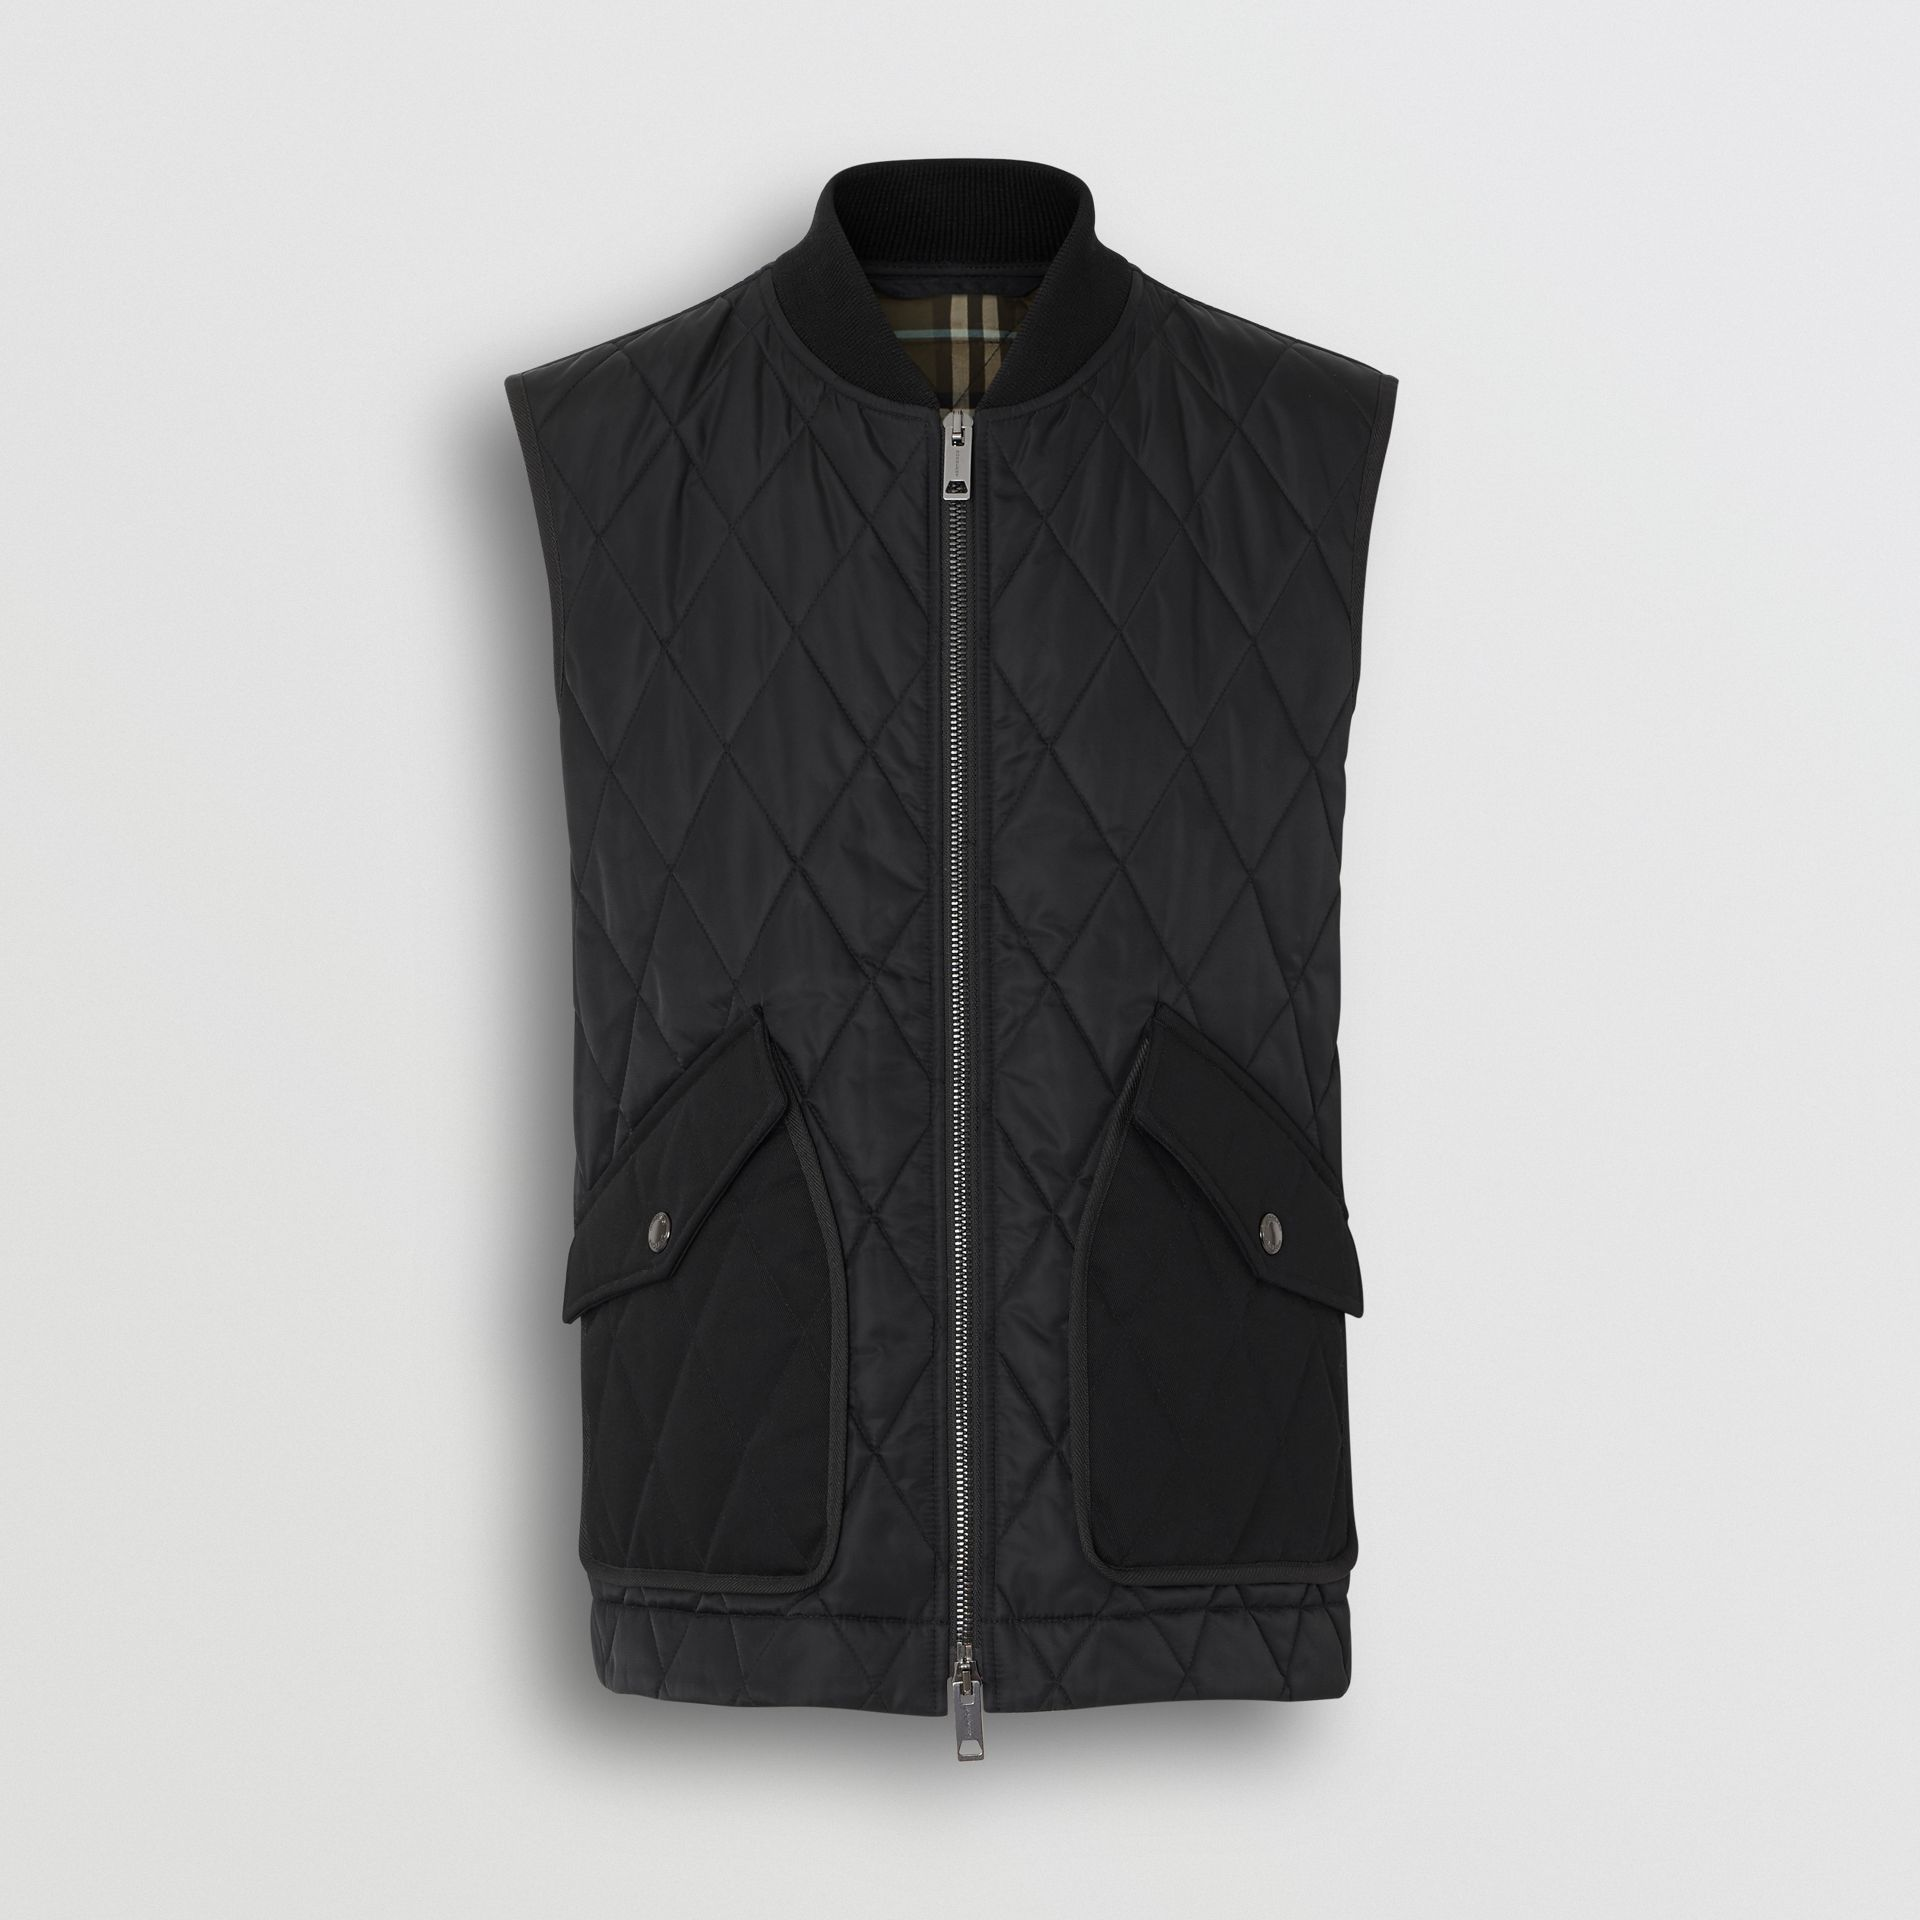 Monogram Motif Diamond Quilted Gilet in Black - Men | Burberry Canada - gallery image 3